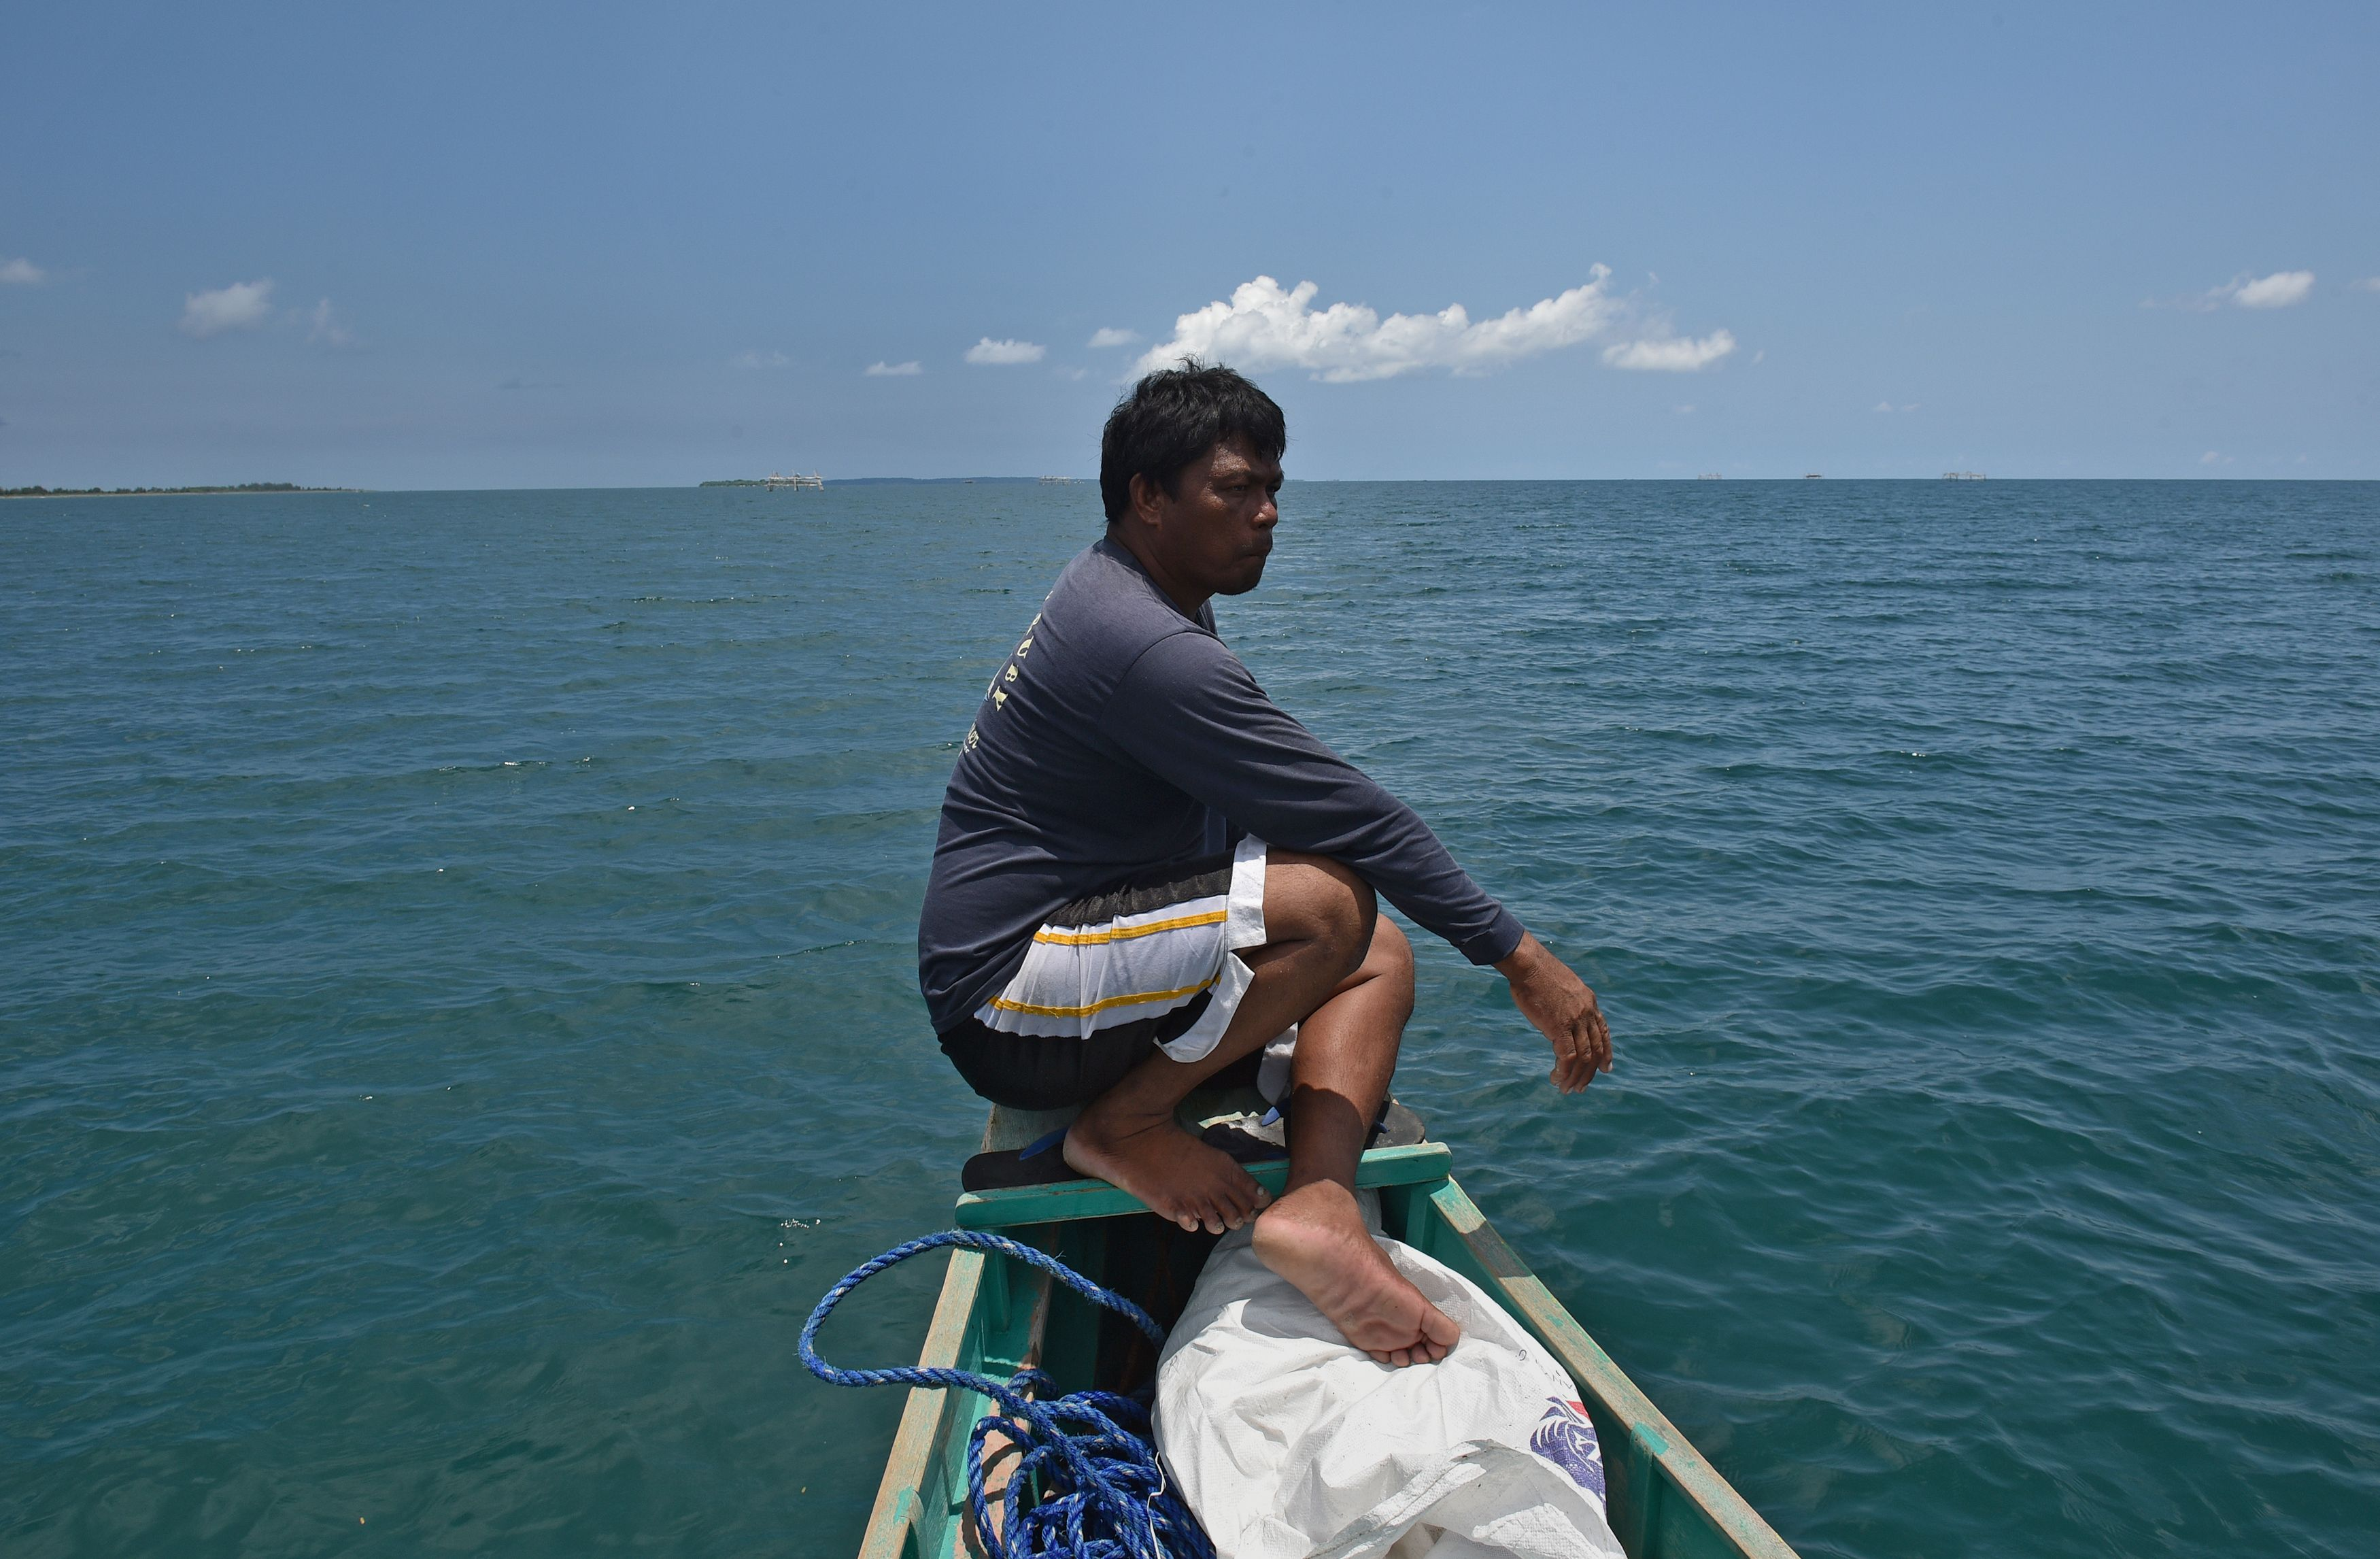 A crew member of a fishing vessel anchored at the mouth of the South China Sea prepares for a fishing expedition to Scarborough Shoal on June 16, 2016.